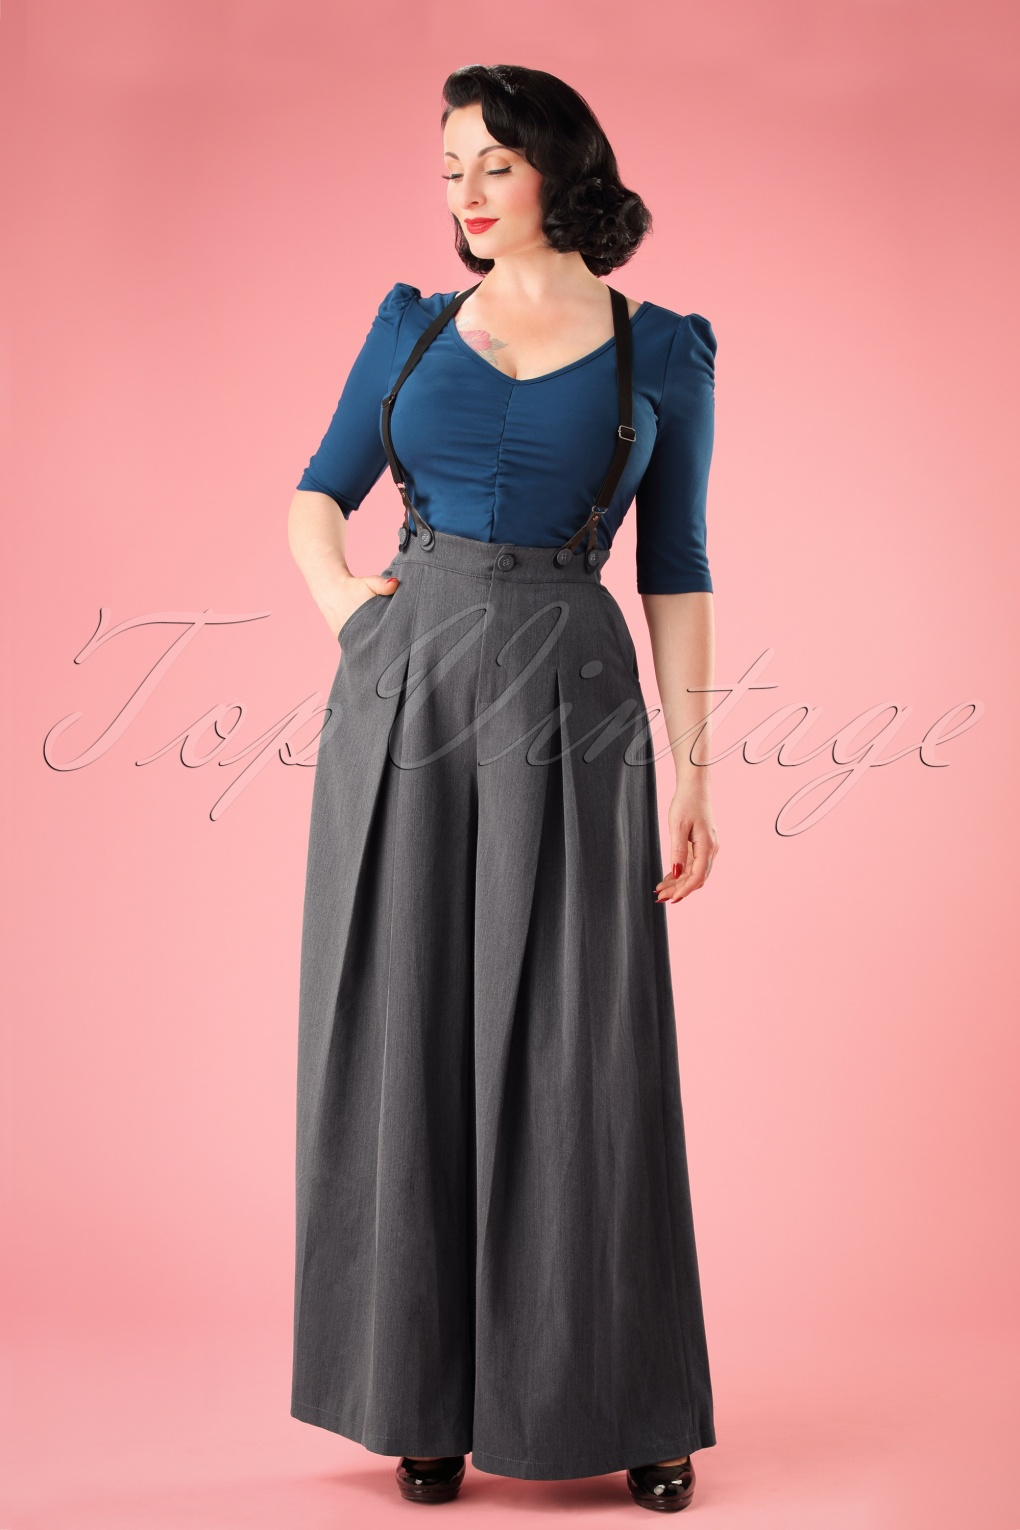 Vintage High Waisted Trousers, Sailor Pants, Jeans 40s Khloe Trousers in Grey £41.29 AT vintagedancer.com